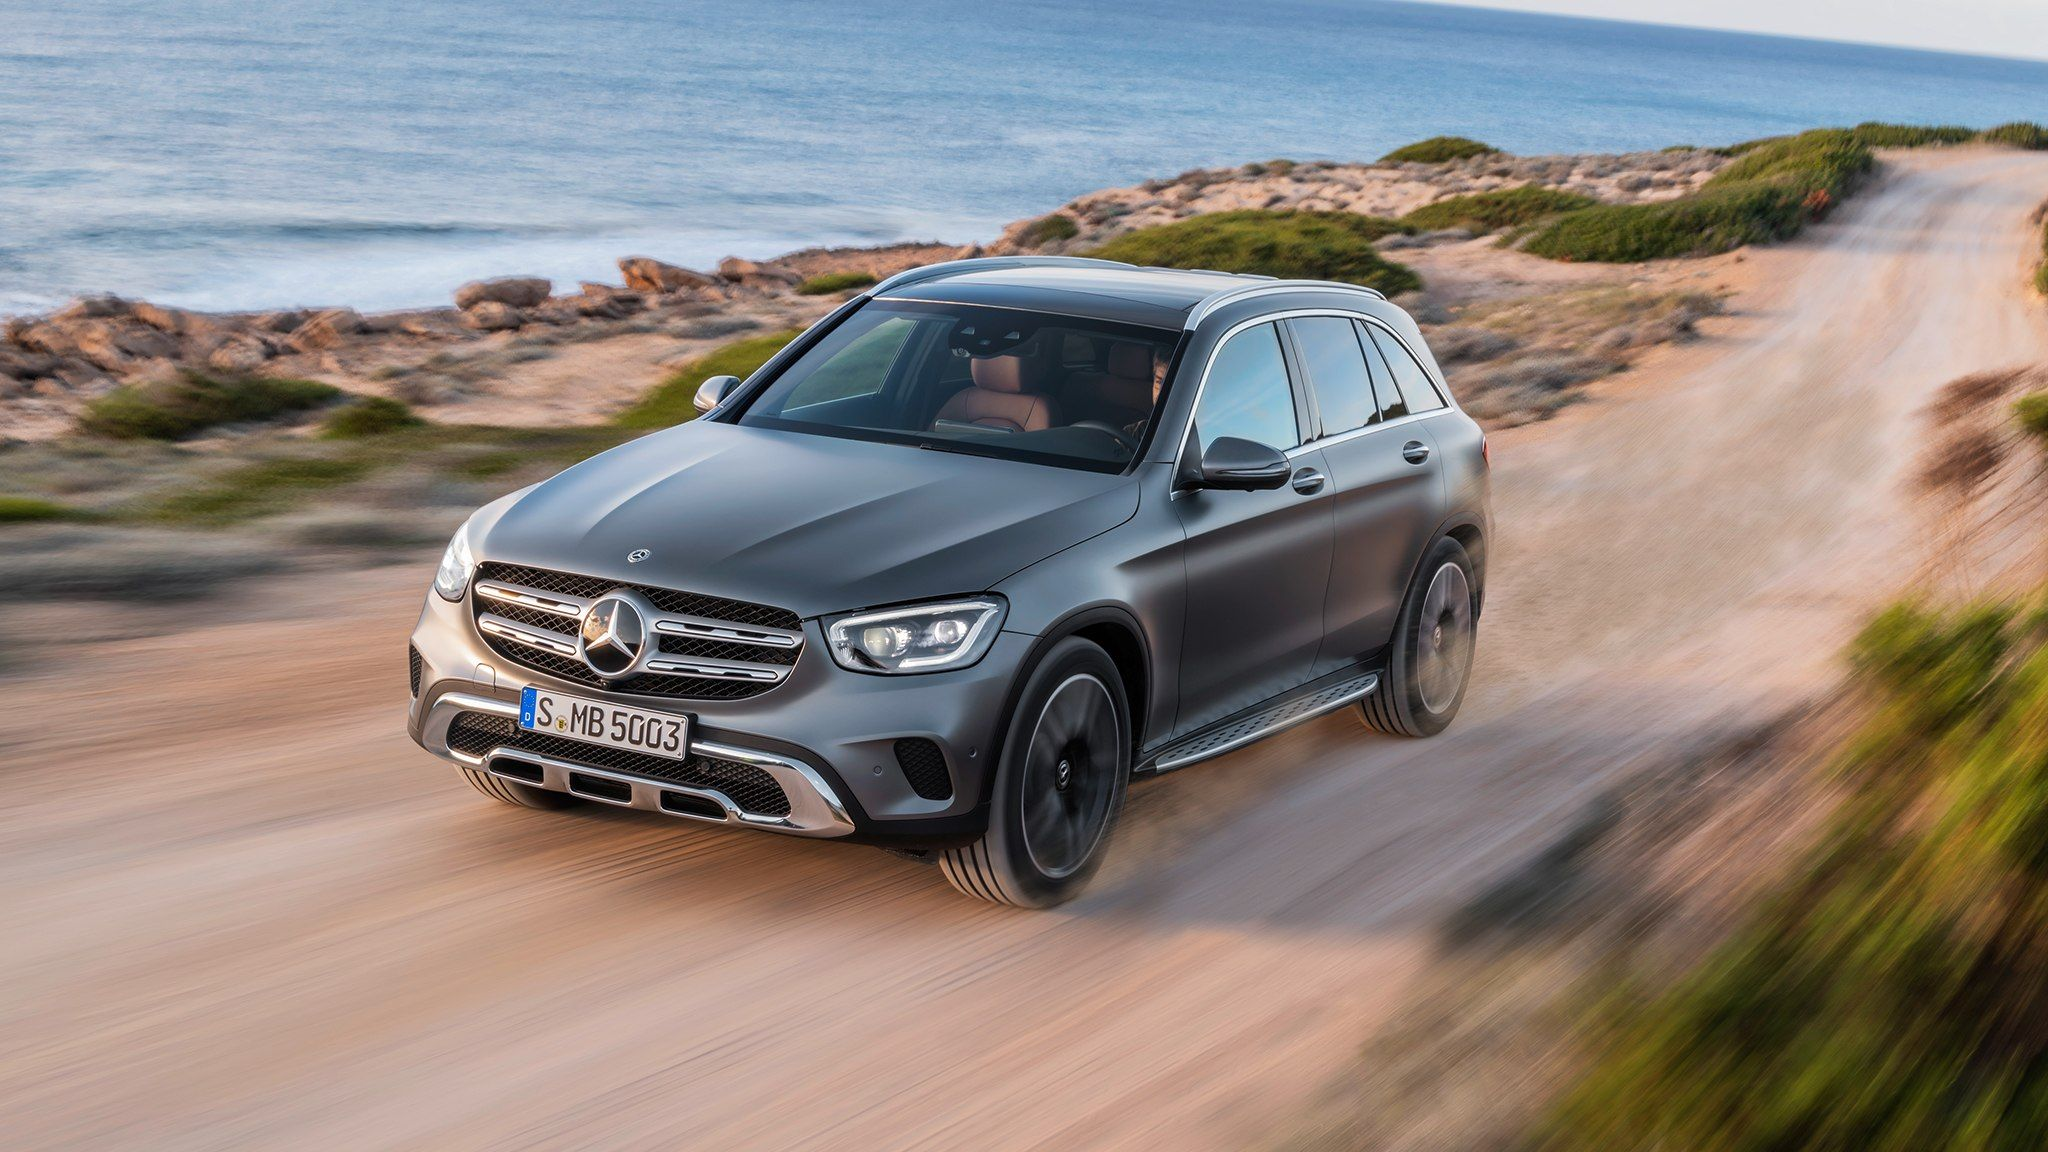 What Has Changed in the pact Crossover of the GLC Mercedes Mercedes publishes a lot of news at this year s Geneva Motor Show but most importantly at